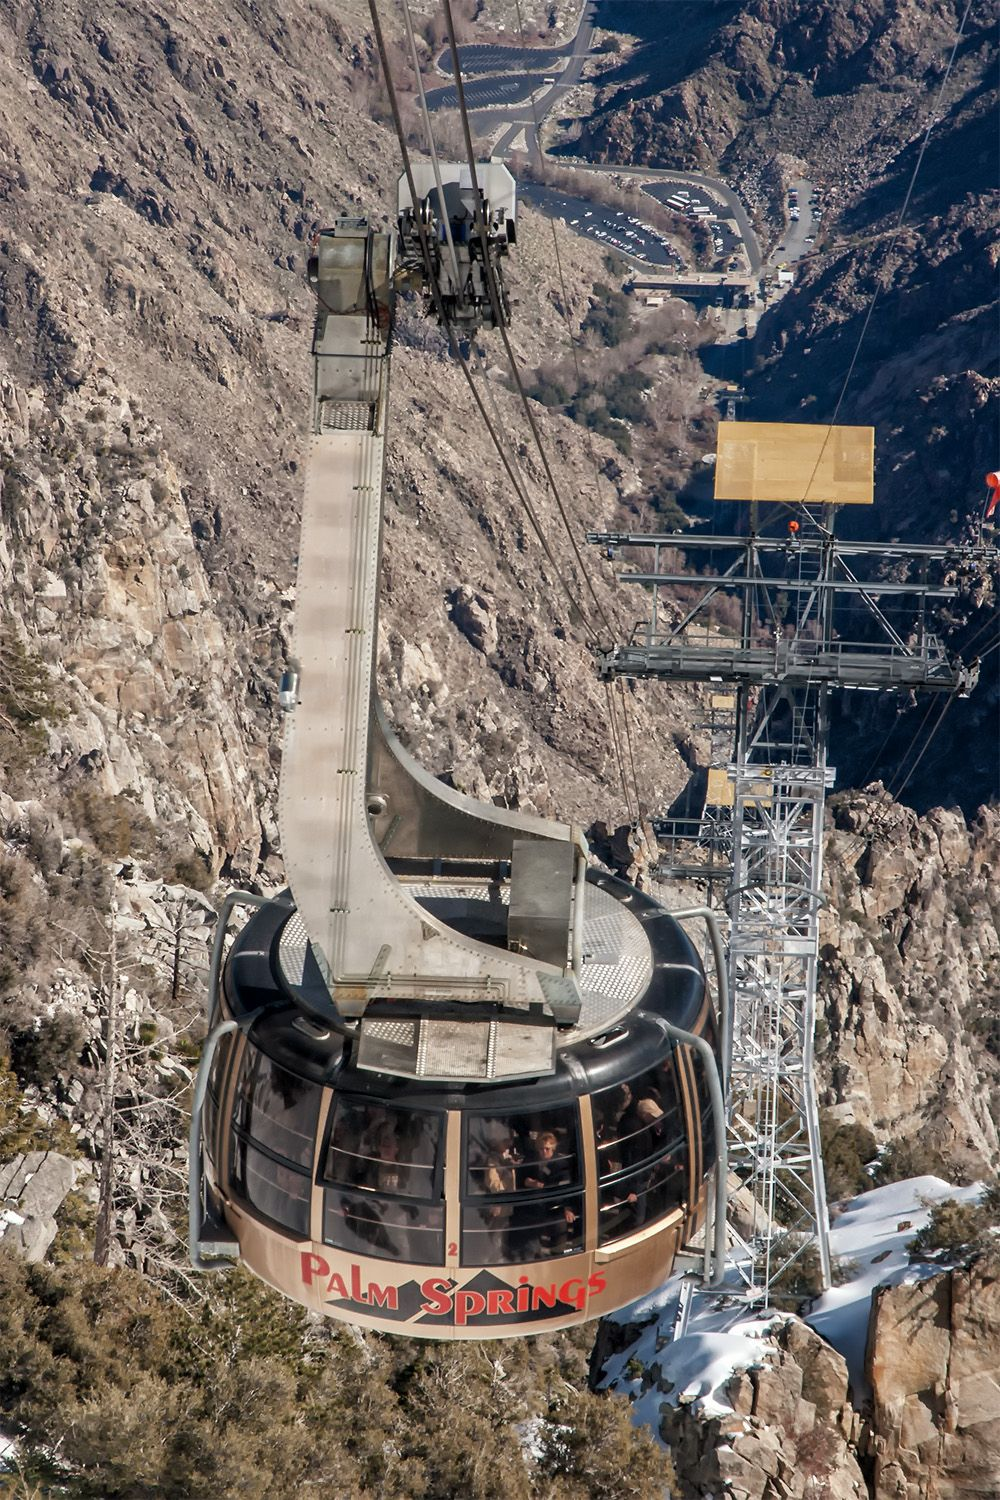 How to see the desert from the sky the palm springs tram